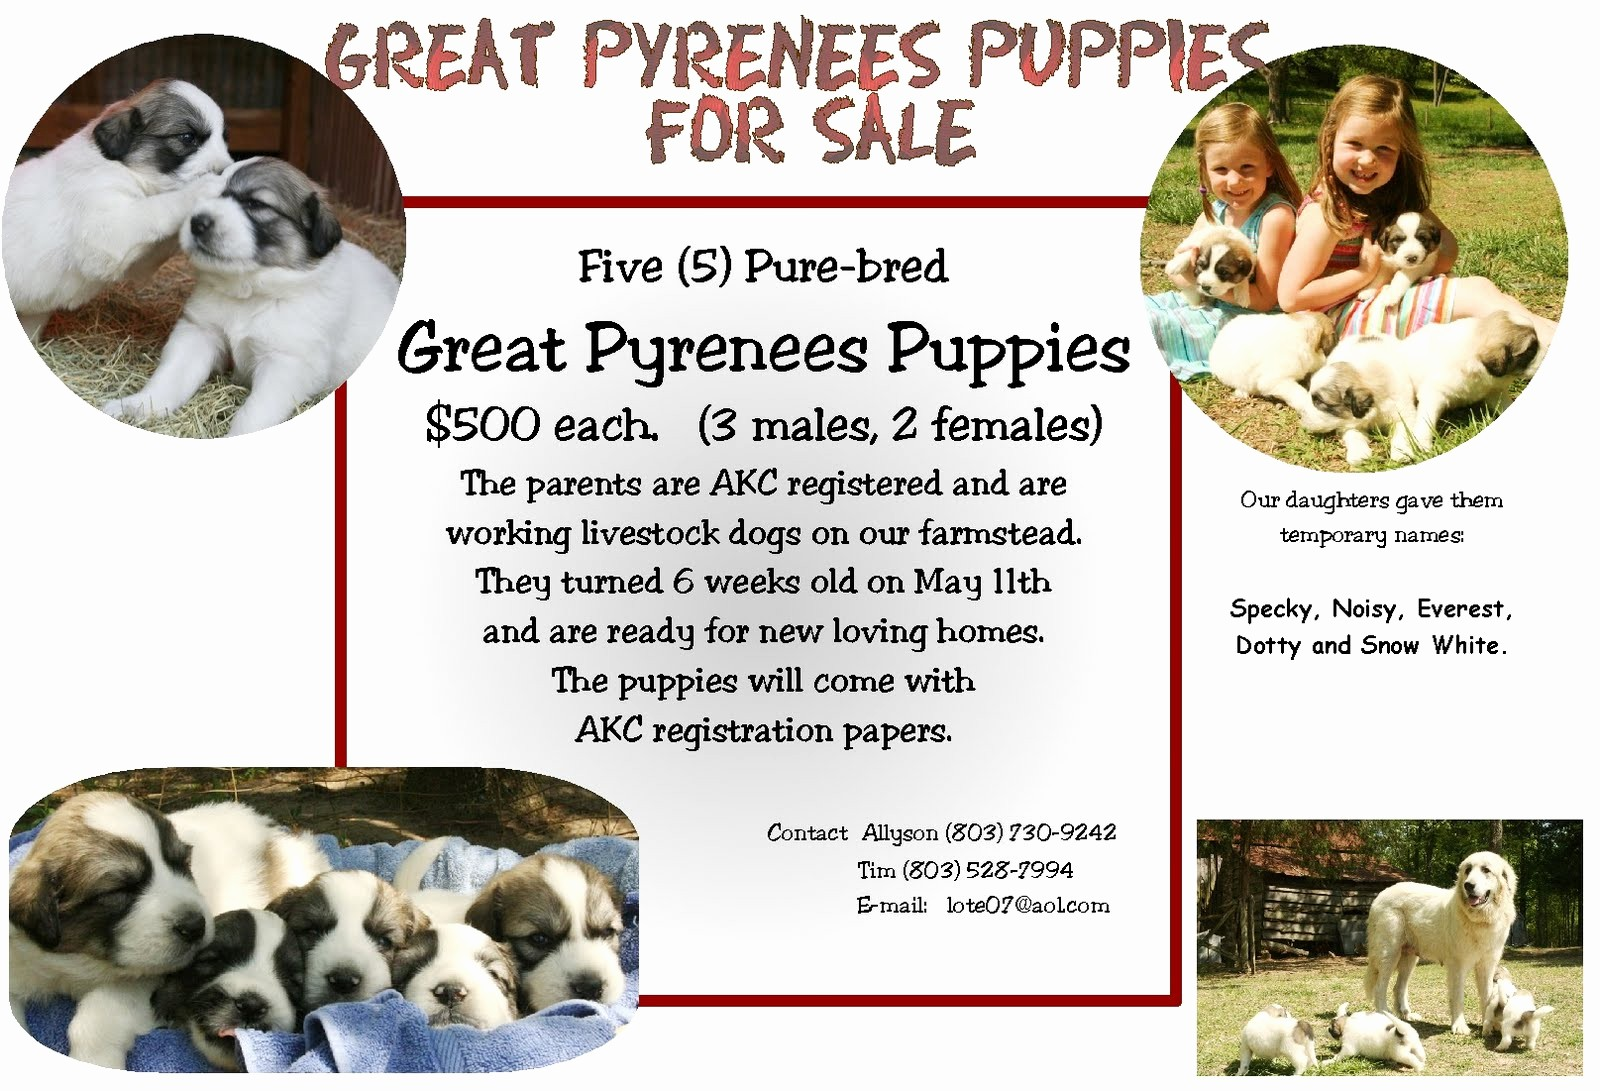 Puppies for Sale Flyer Template Best Of Till We there Puppies for Sale